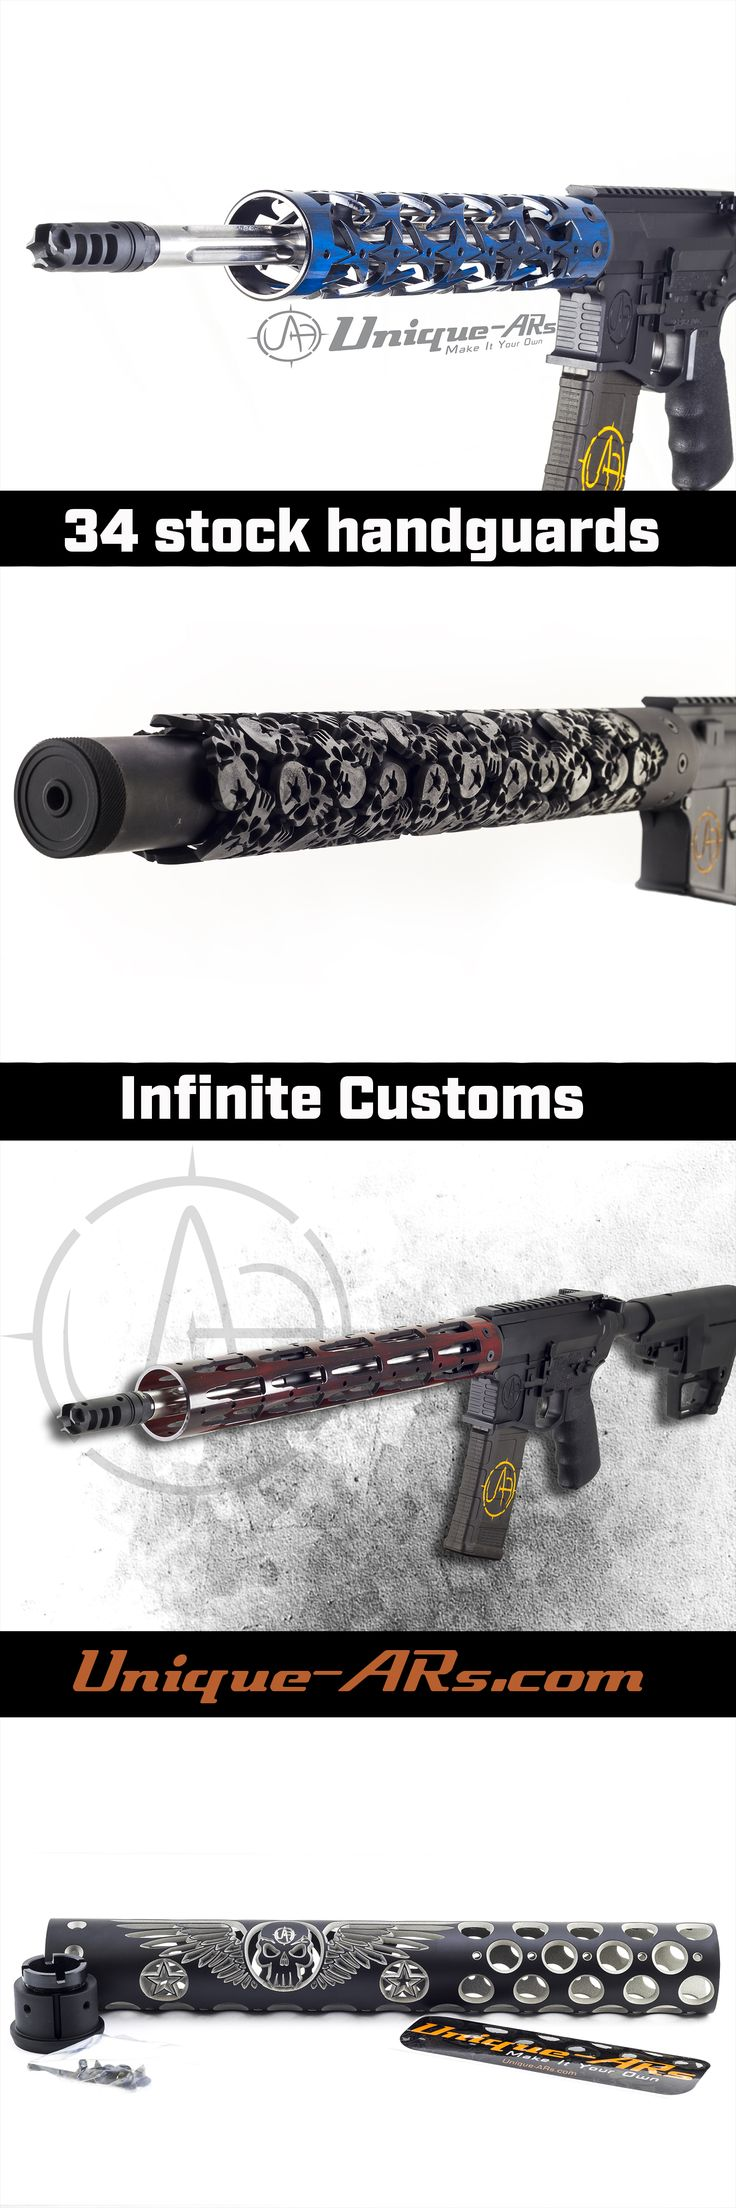 We offer 34 stock handguards for your AR-15, AR-10, or Airsoft rifle.  If stock handguards don't do it for you, we love to do custom handguards also.  Come up with an idea, and we can make it!  Check out some past customers' customs here- https://unique-ars.com/custom-handguards/